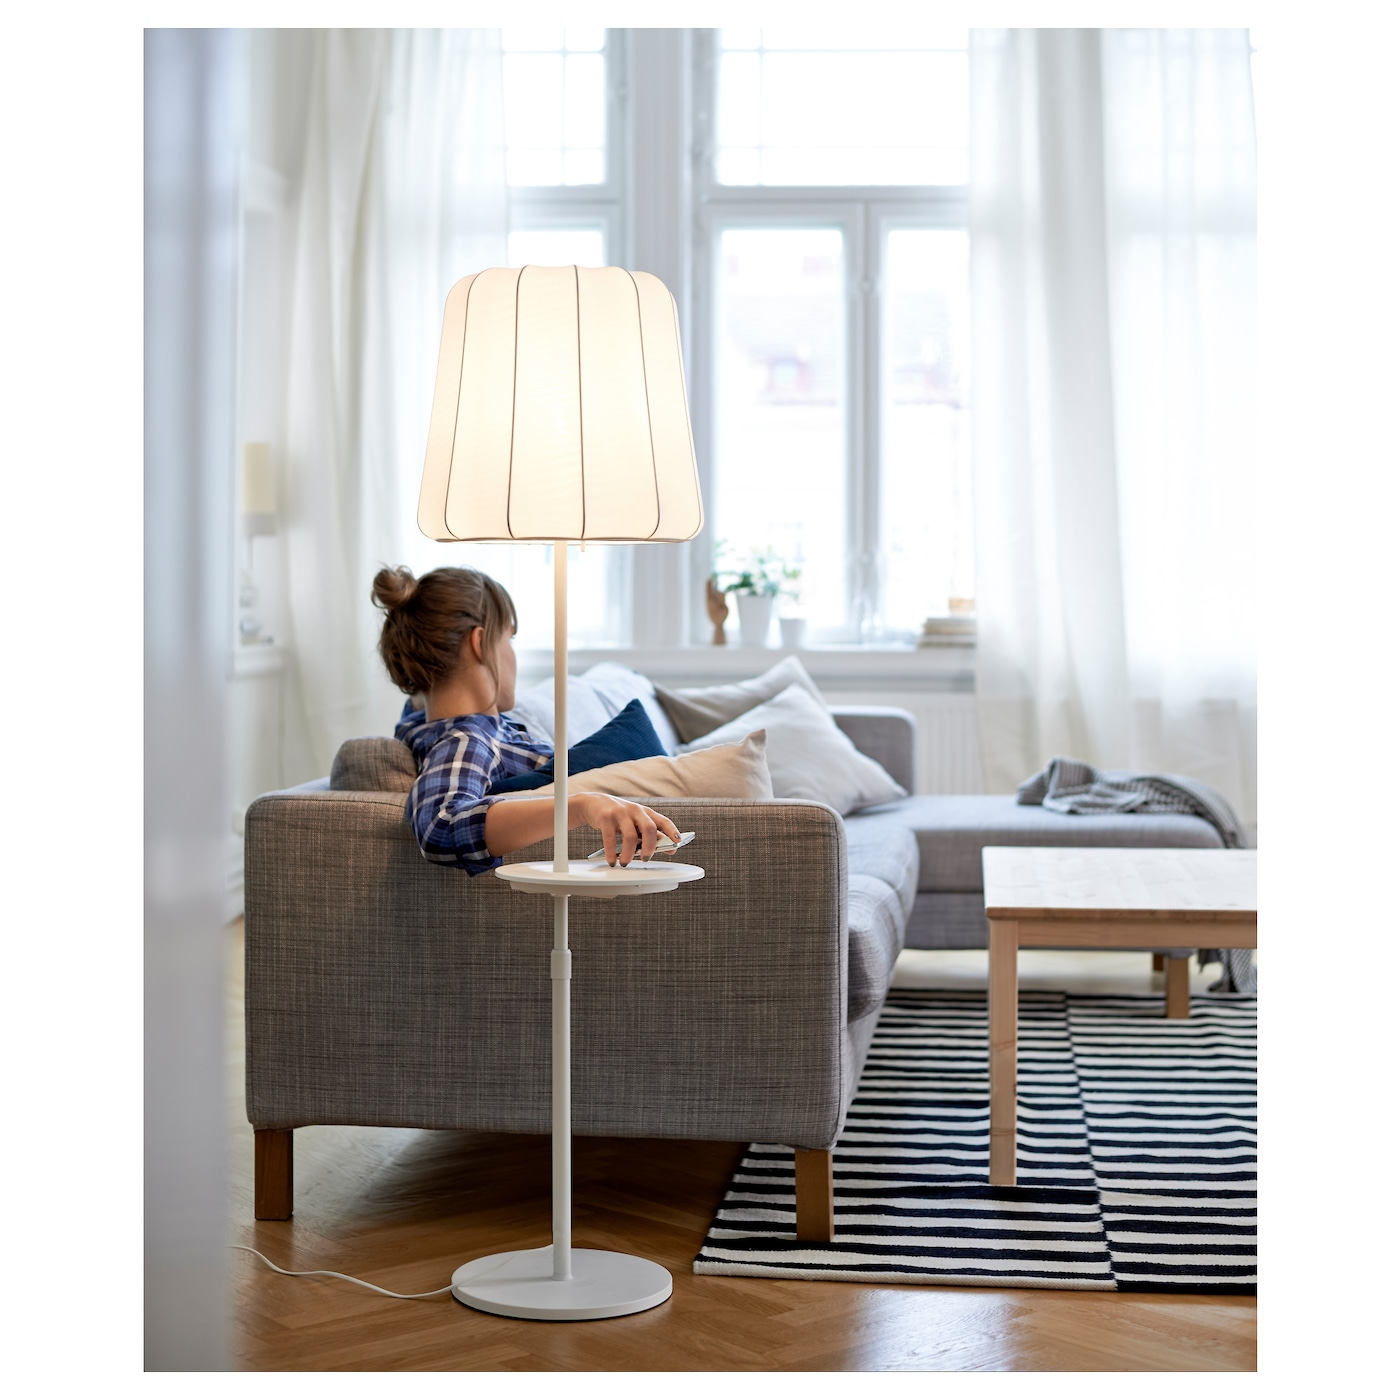 floor lamps ikea philippines. Black Bedroom Furniture Sets. Home Design Ideas